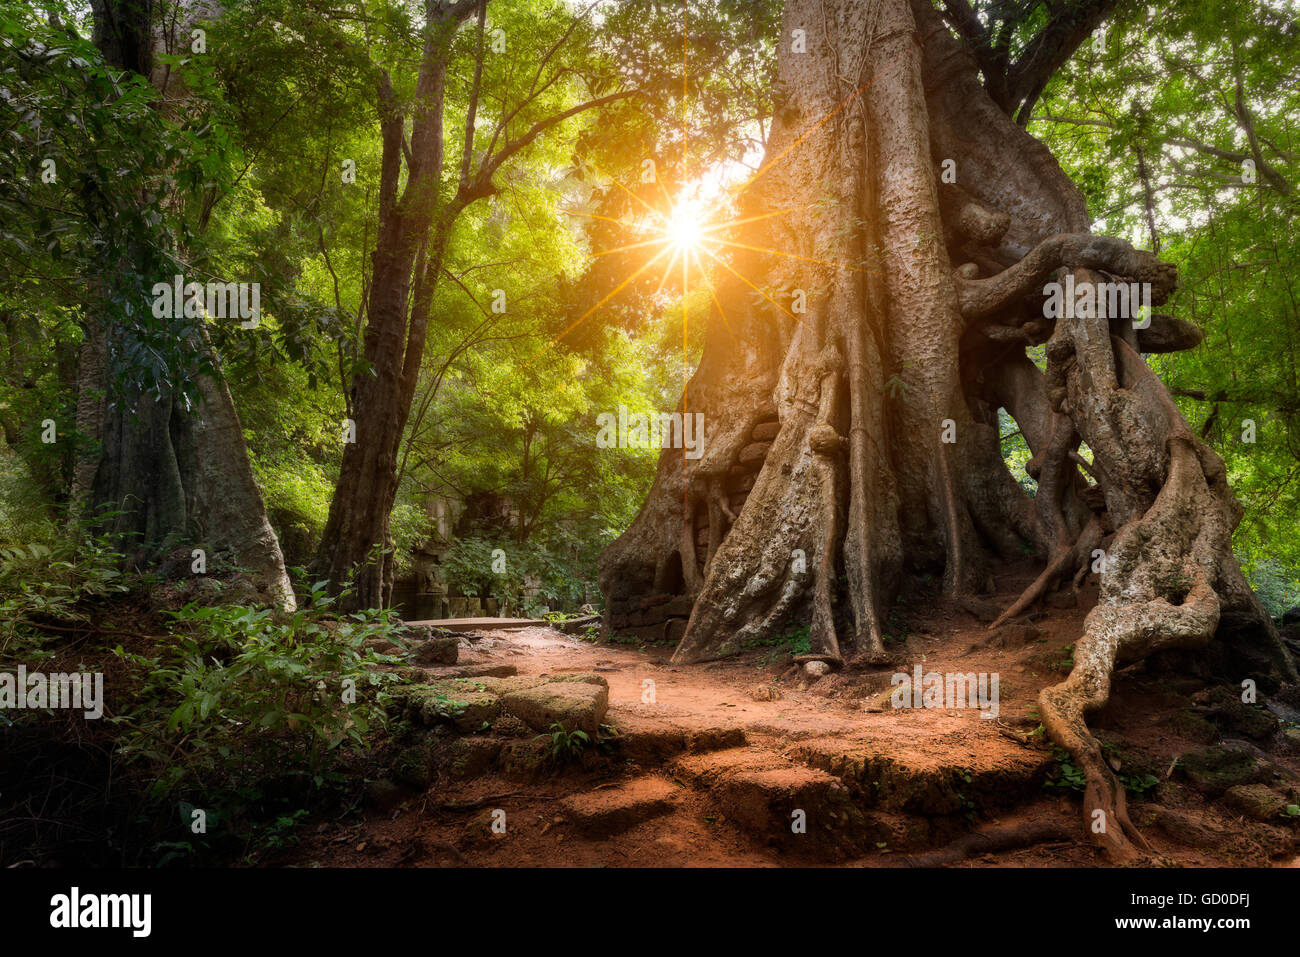 The sun shines through the jungle canopy in Siem Reap, Cambodia. - Stock Image